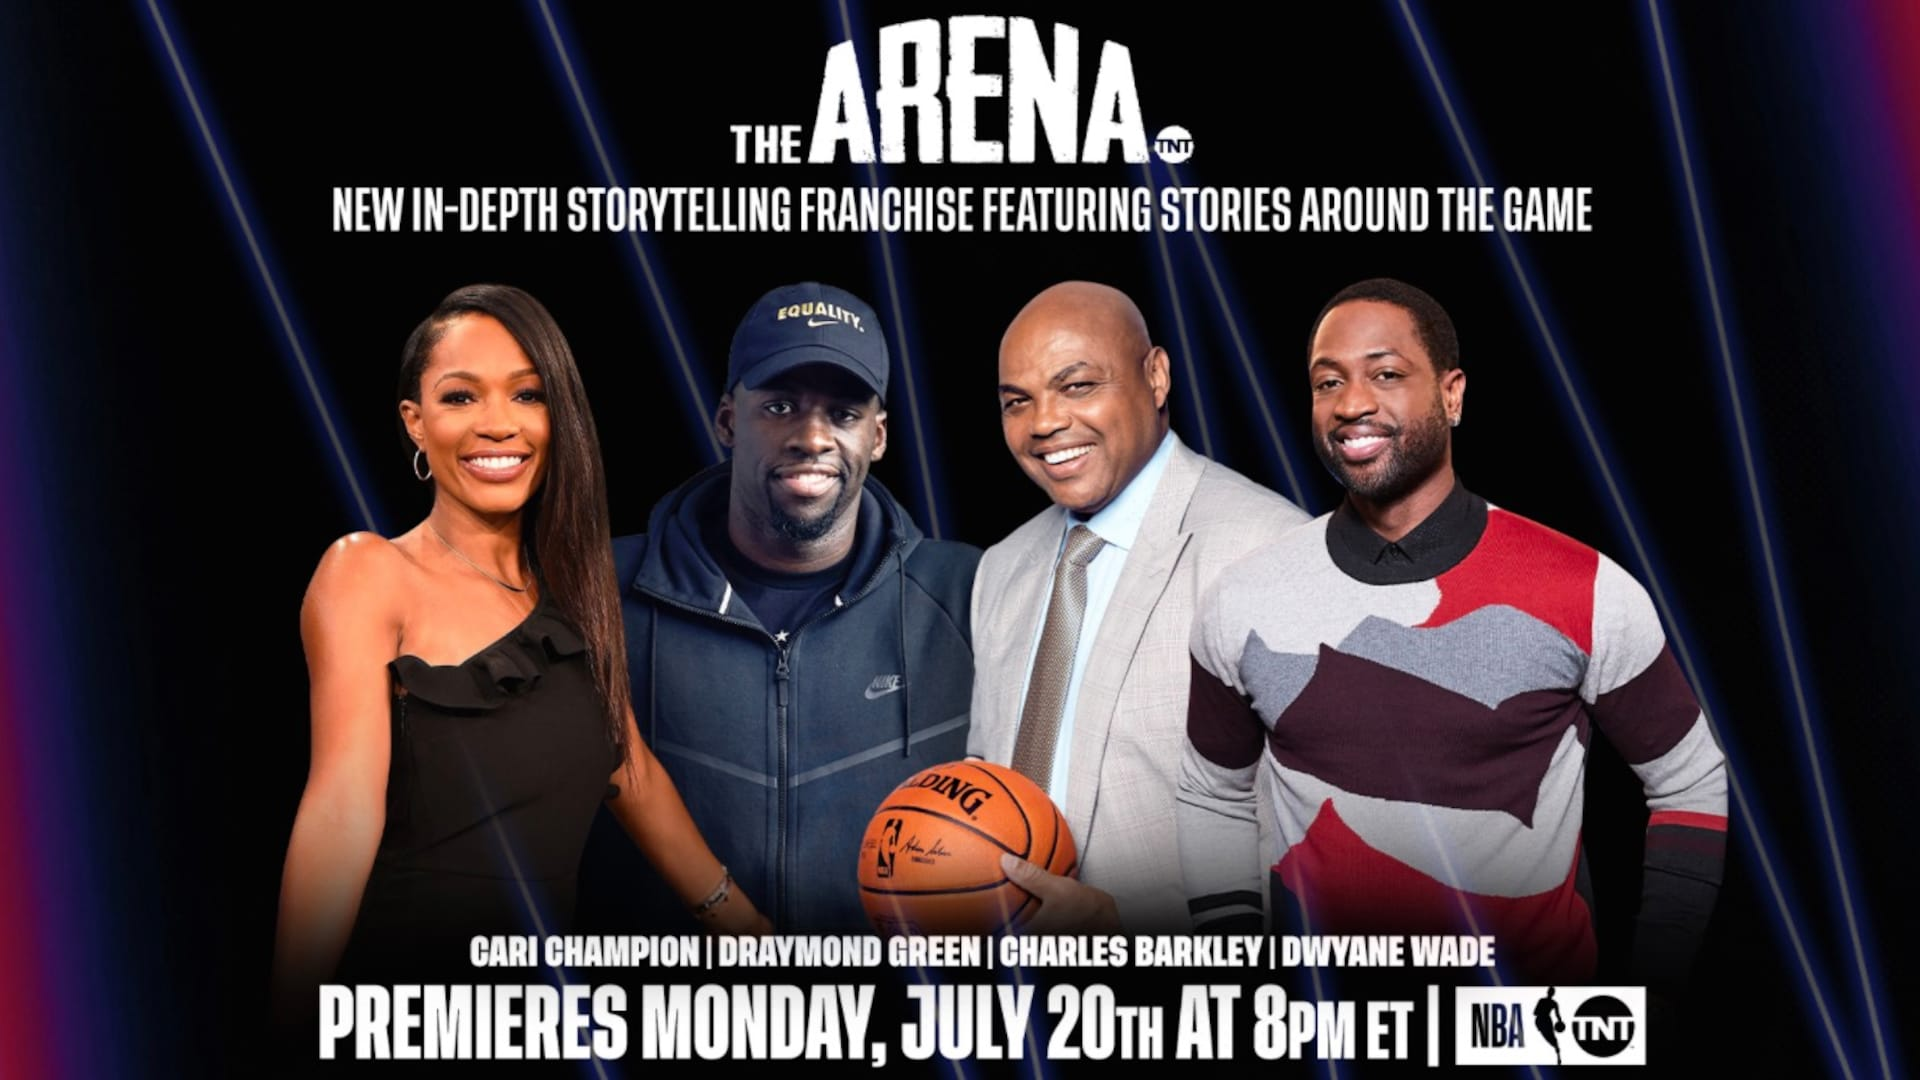 Turner Sports announces debut of new storytelling show 'The Arena'